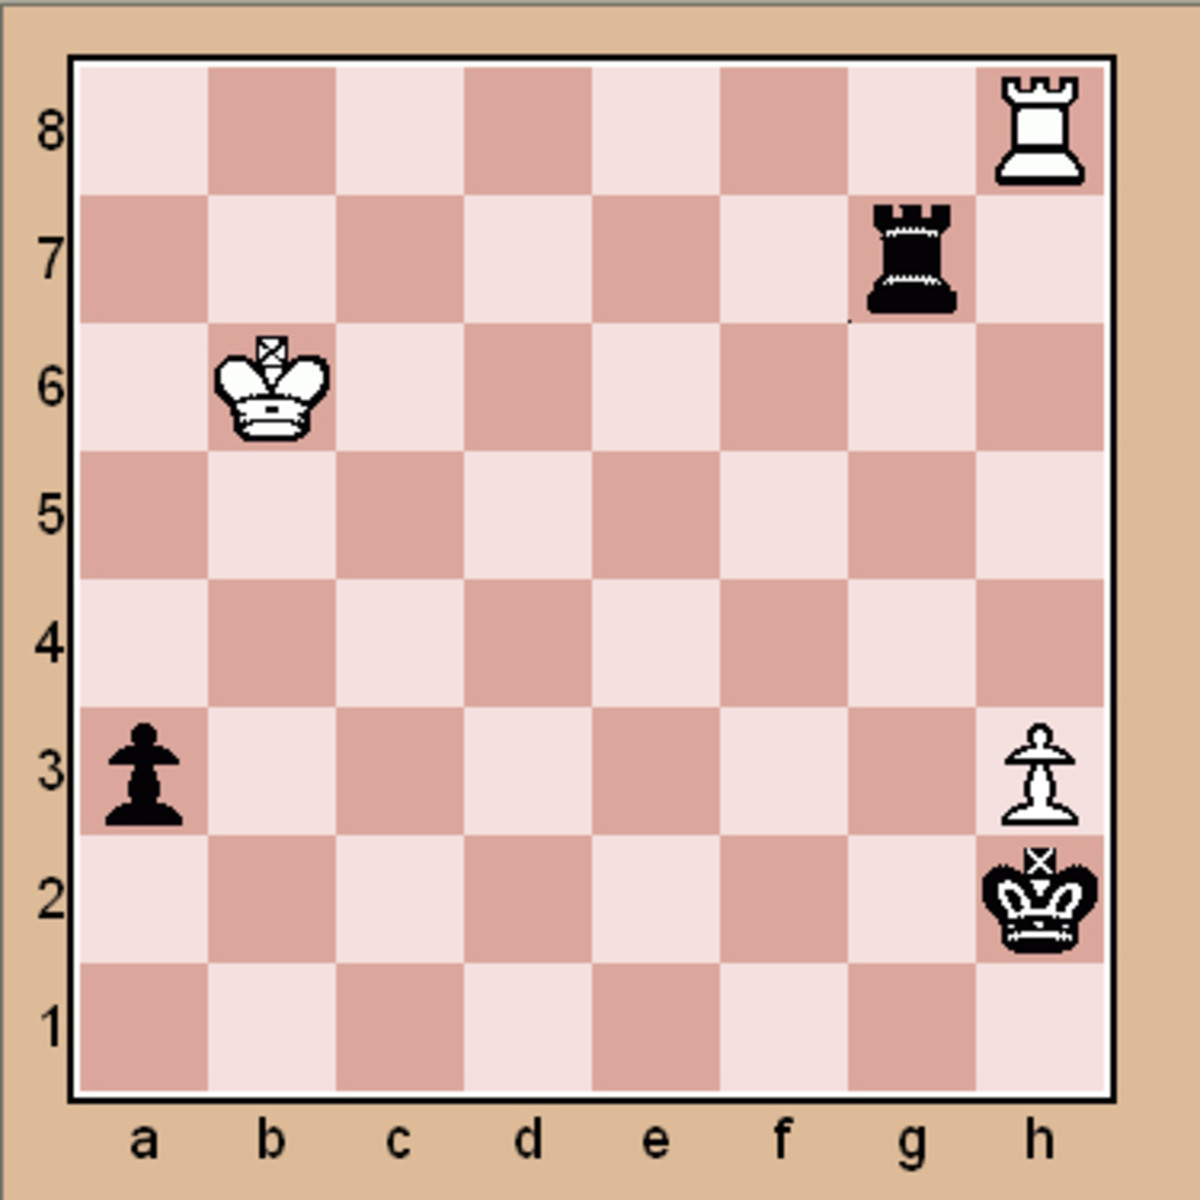 Adavnced chess strategy puzzle (Click to enlarge)